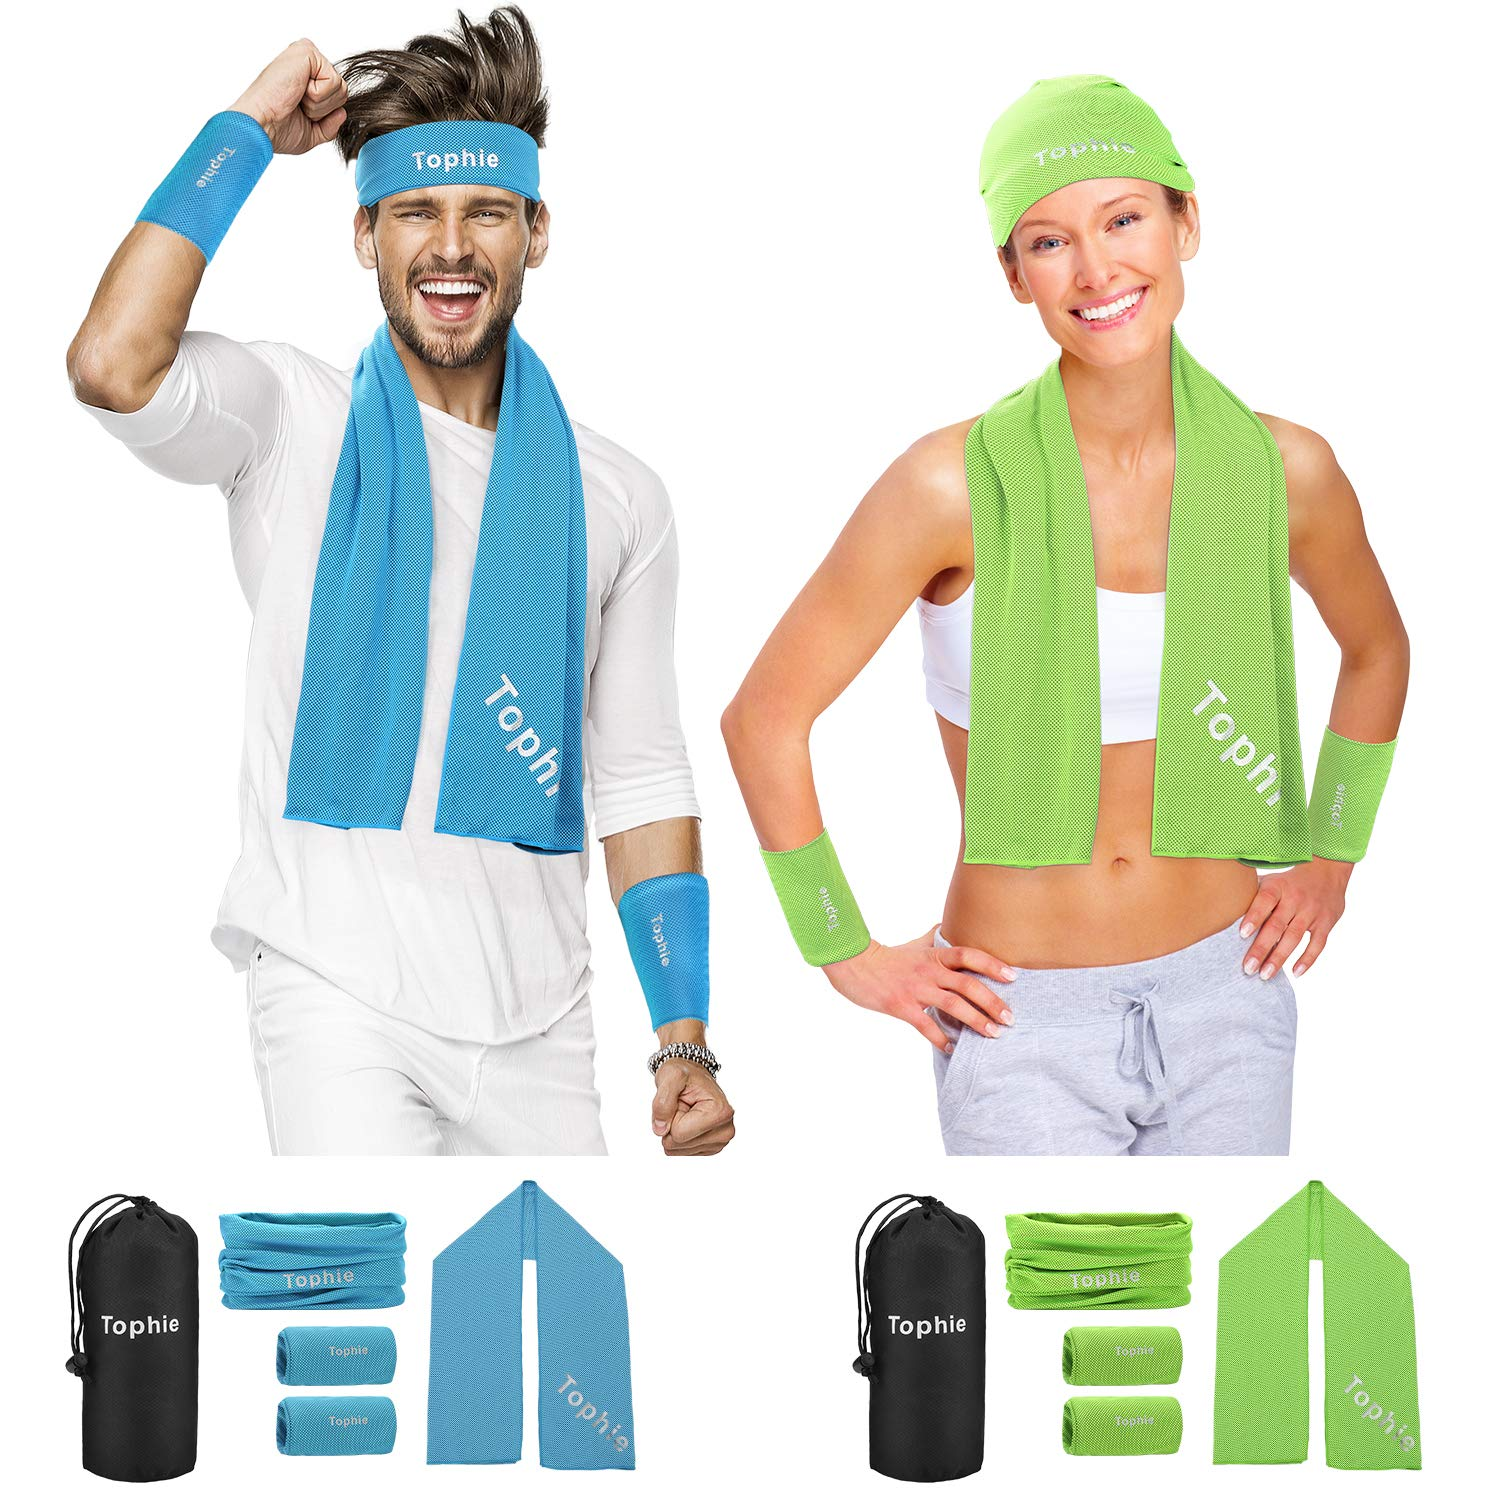 Cooling Towel Headbands Neck Wrap Wristbands Set(Green) for Man and Women, Microfiber Towel for All Activities. Keep Cool Scarf for Workout, Gym, Yoga,Travel,Golf with UV Resistence Function by Tophie